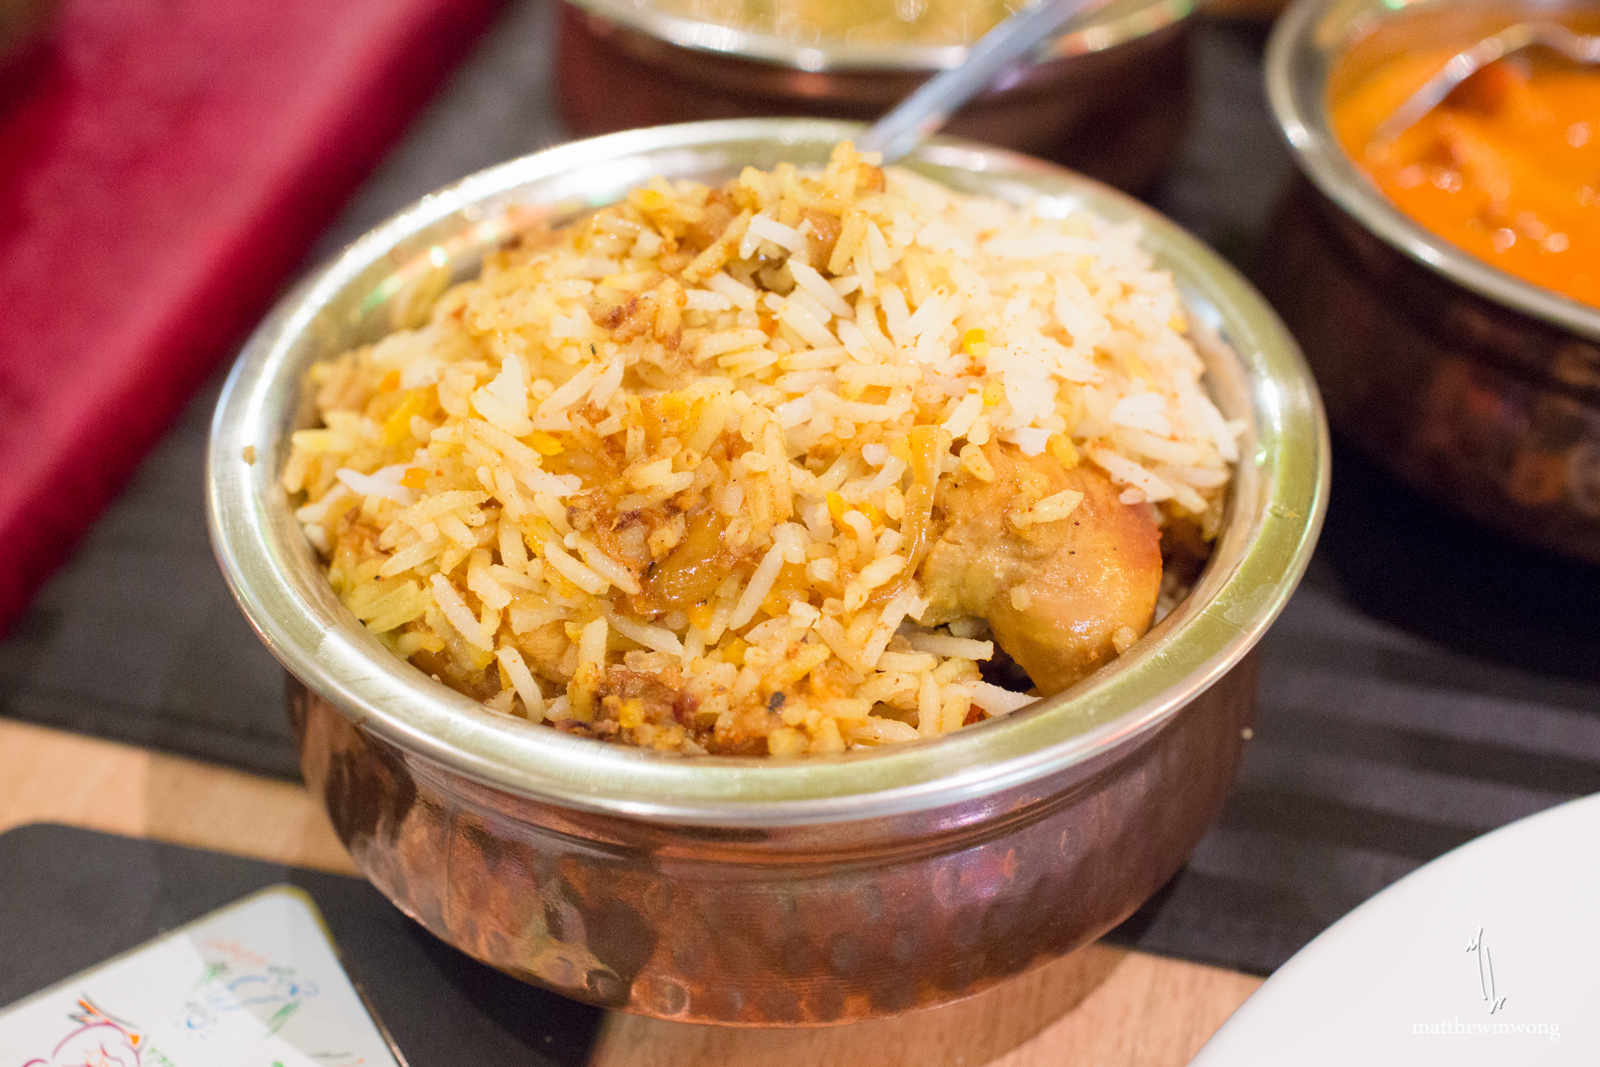 Chicken Biryani, Rice cooked with spiced chicken